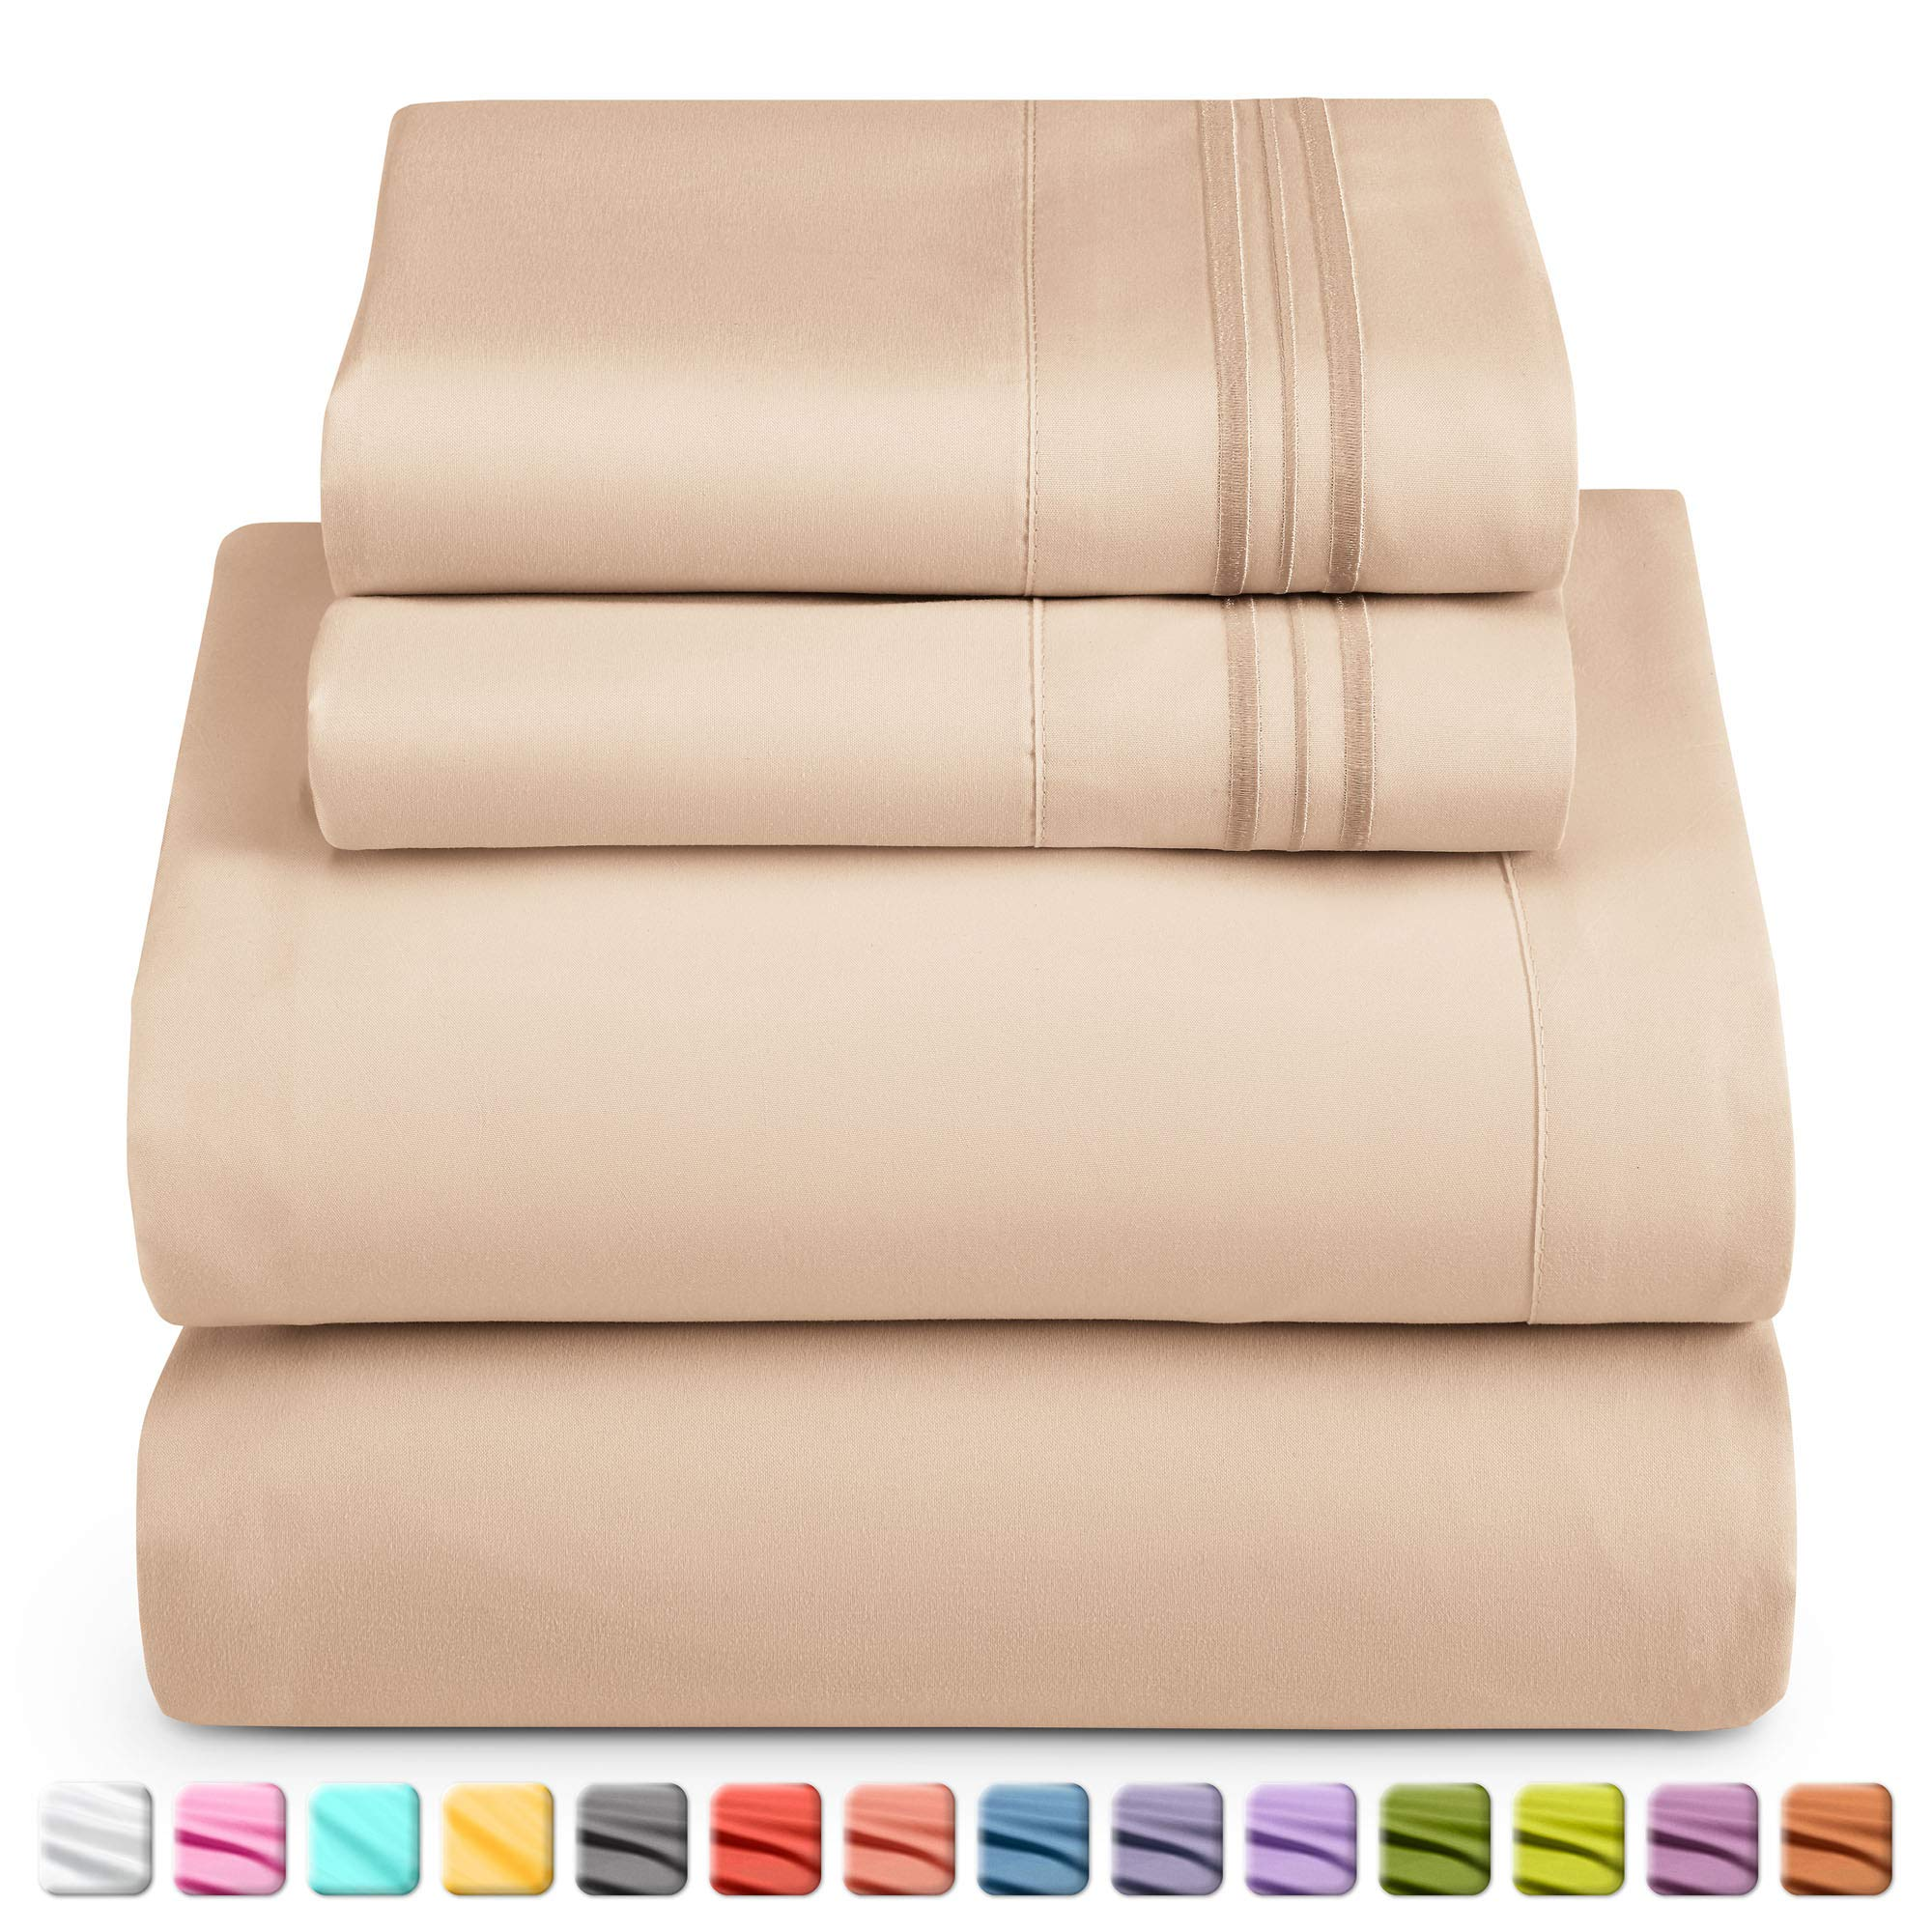 Nestl Deep Pocket Full Sheets: 4 Piece Full Size Bed Sheets with Fitted Sheet, Flat Sheet, Pillow Cases - Extra Soft Microfiber Bedsheet Set with Deep Pockets for Full Sized Mattress - Taupe